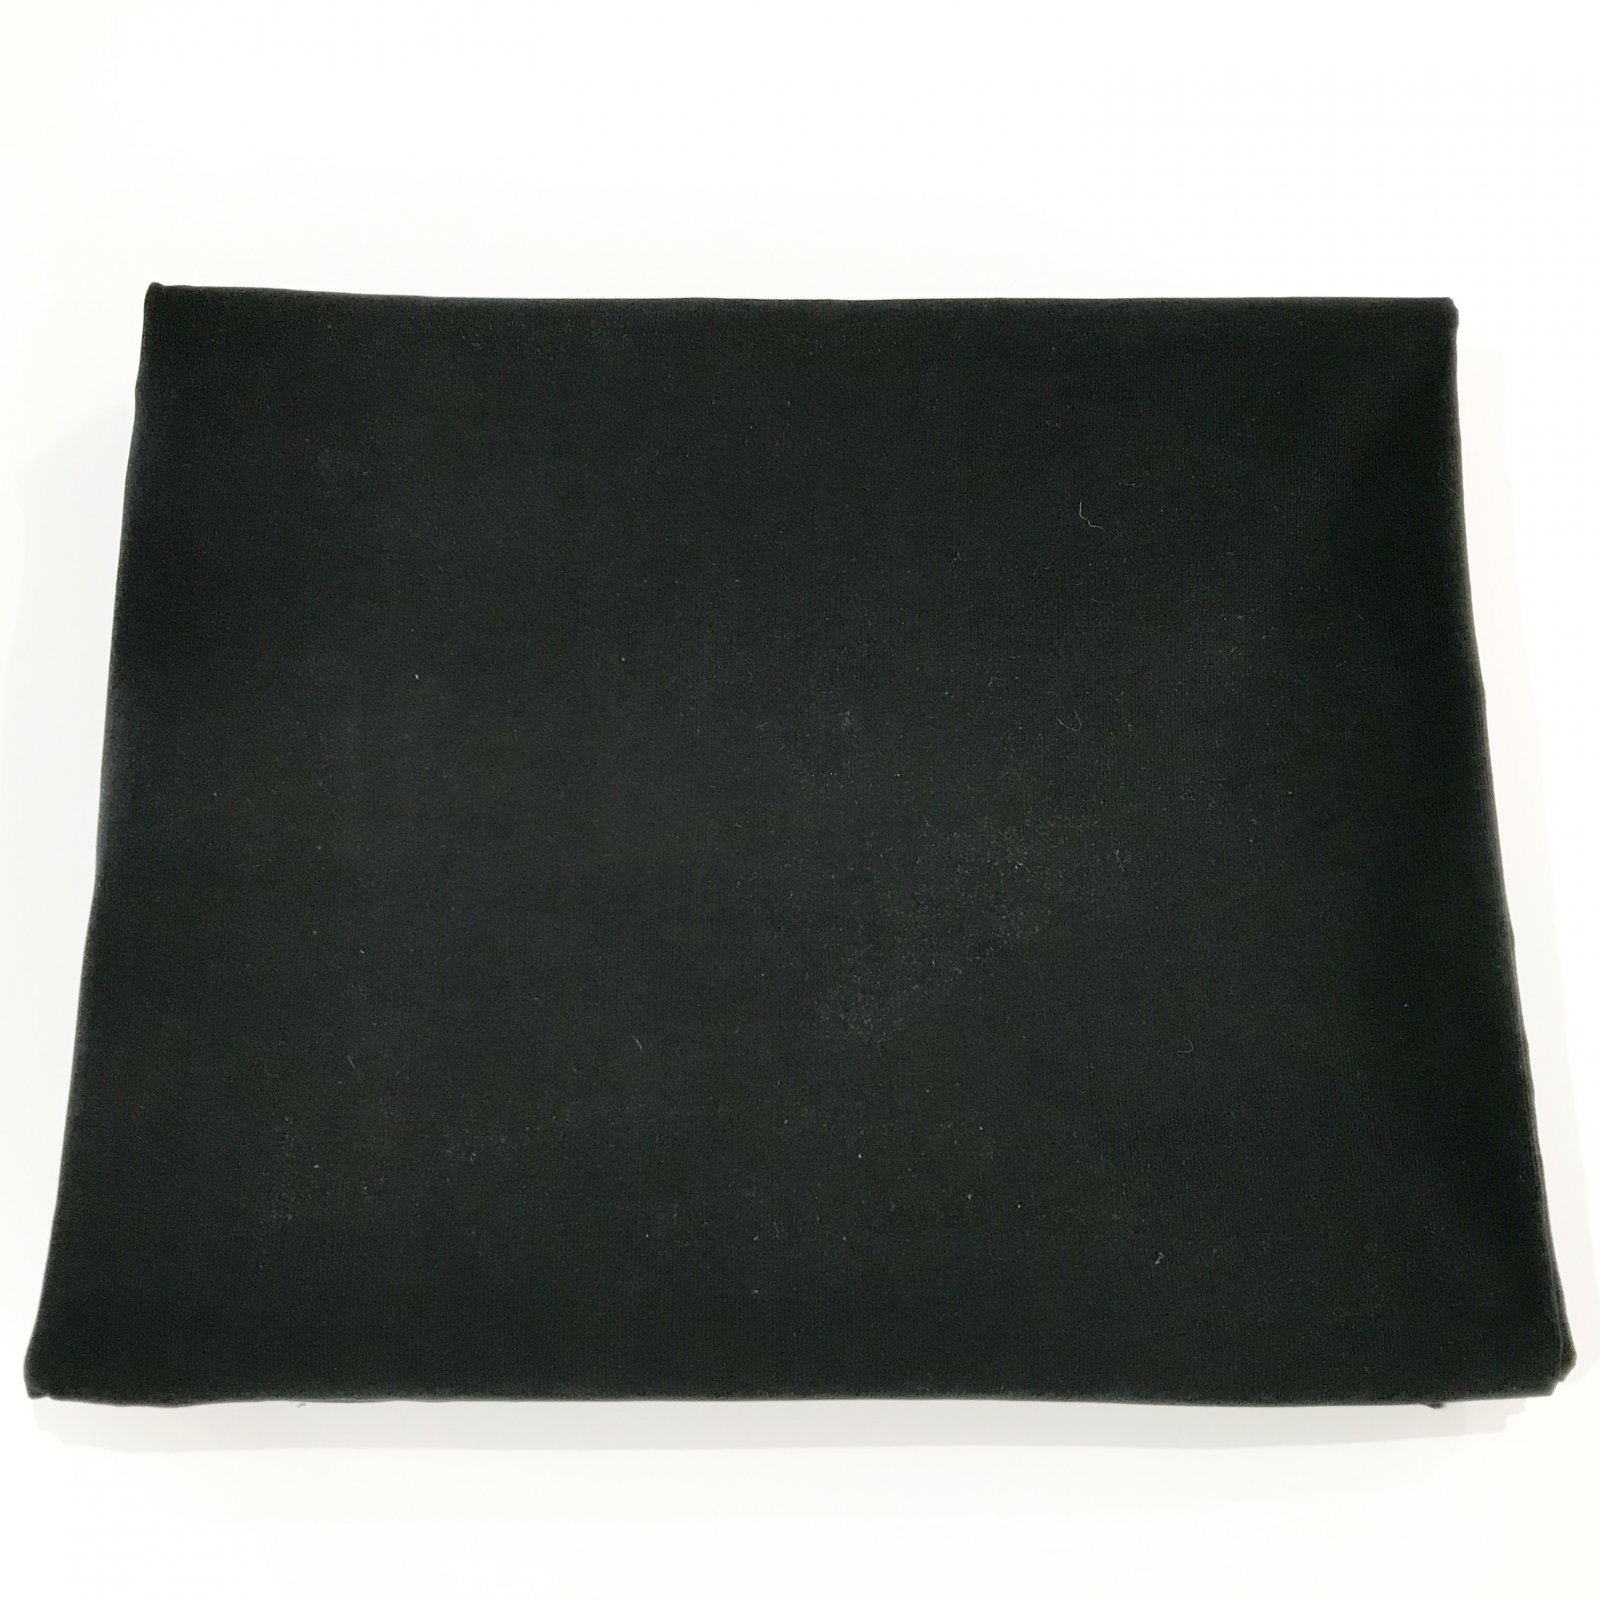 2 yards + 15 inches - Stretch Corduroy- Black